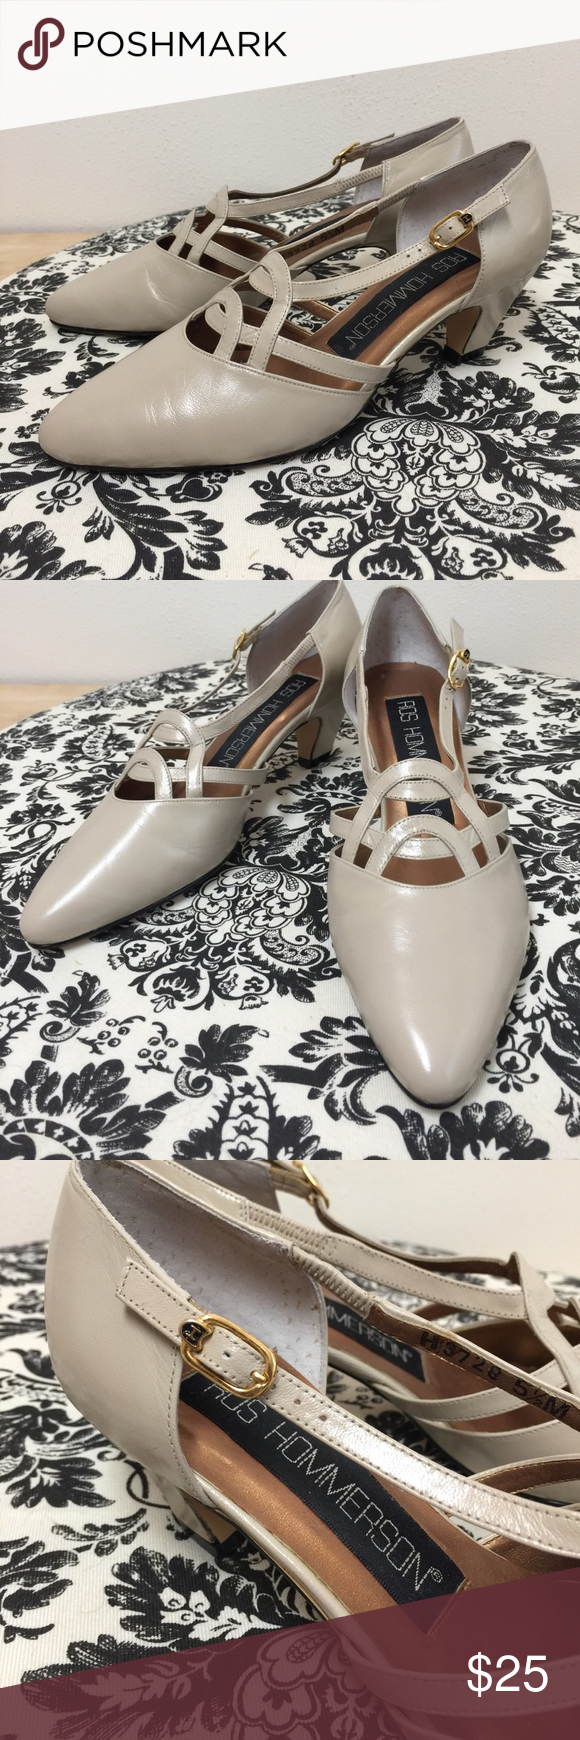 Size 5.5 Ros Hommerson Beige Leather Heels These shoes are in near perfect condition. They look to have never been worn. There is some peeling on the inside of the shoe and a nearly invisible spot on the left shoe. See last two pics. Size 5.5. Smoke free home. Ros Hommerson Shoes Heels